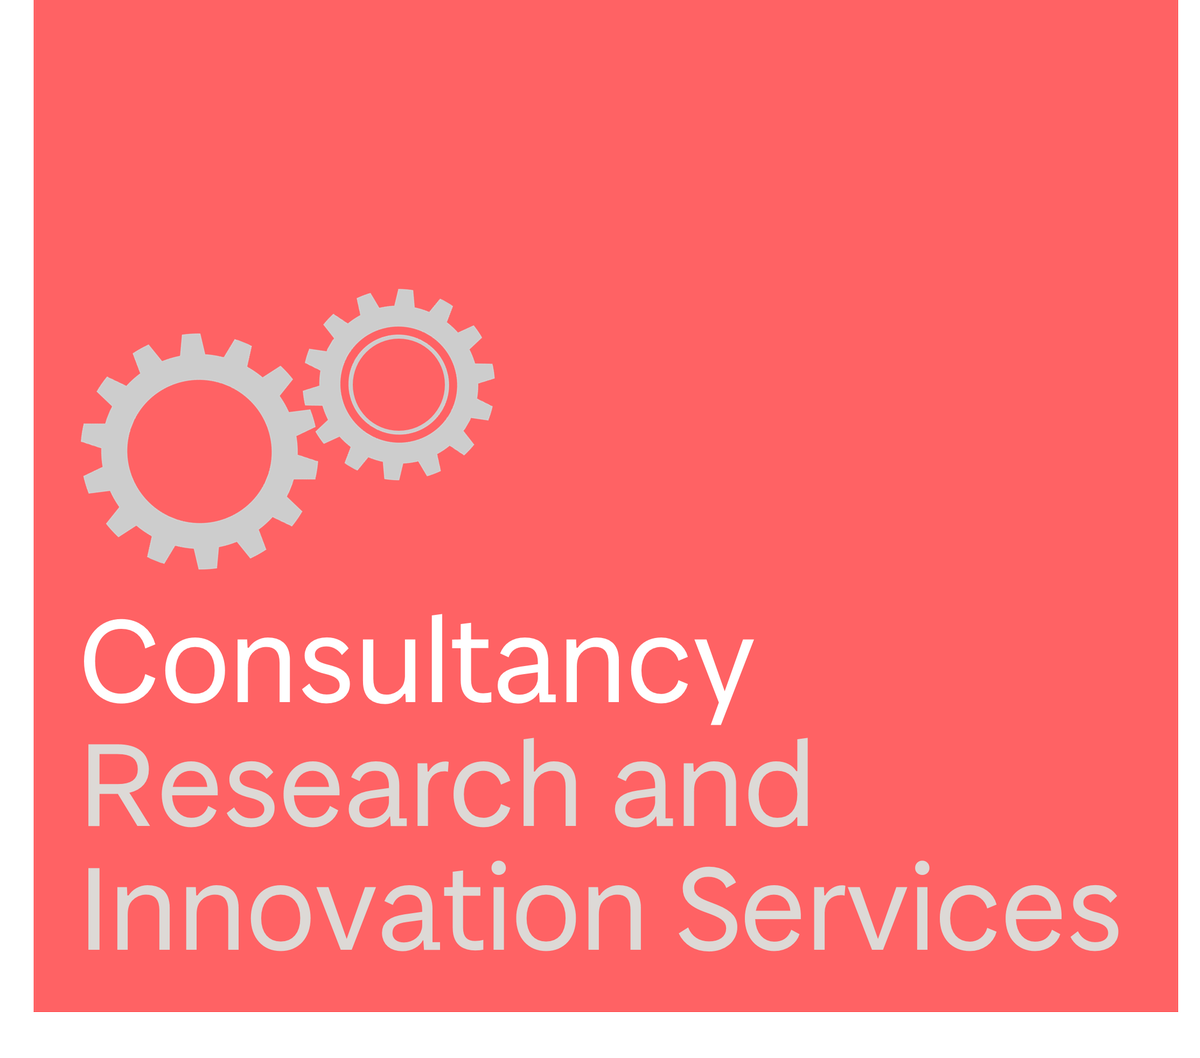 #dundeeuni staff, have you considered consultancy as a way to engage &amp; make impact? Find out more:  http:// uod.ac.uk/2vE4aWc  &nbsp;   #mostinnovative <br>http://pic.twitter.com/INbHY2lPKy